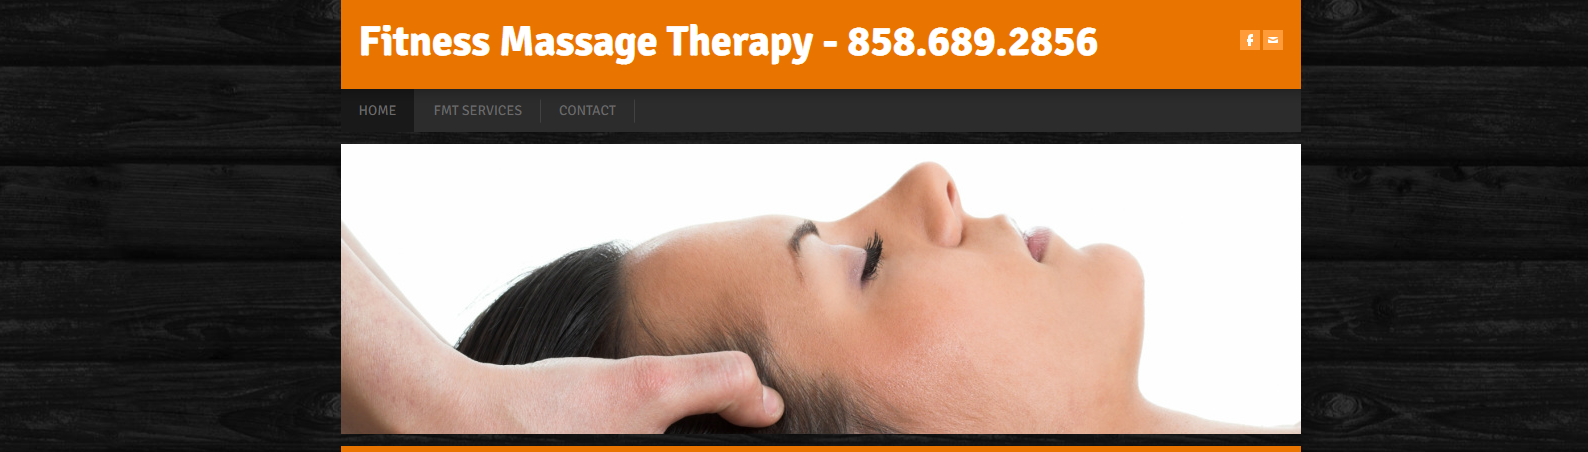 Fitness massage therapy